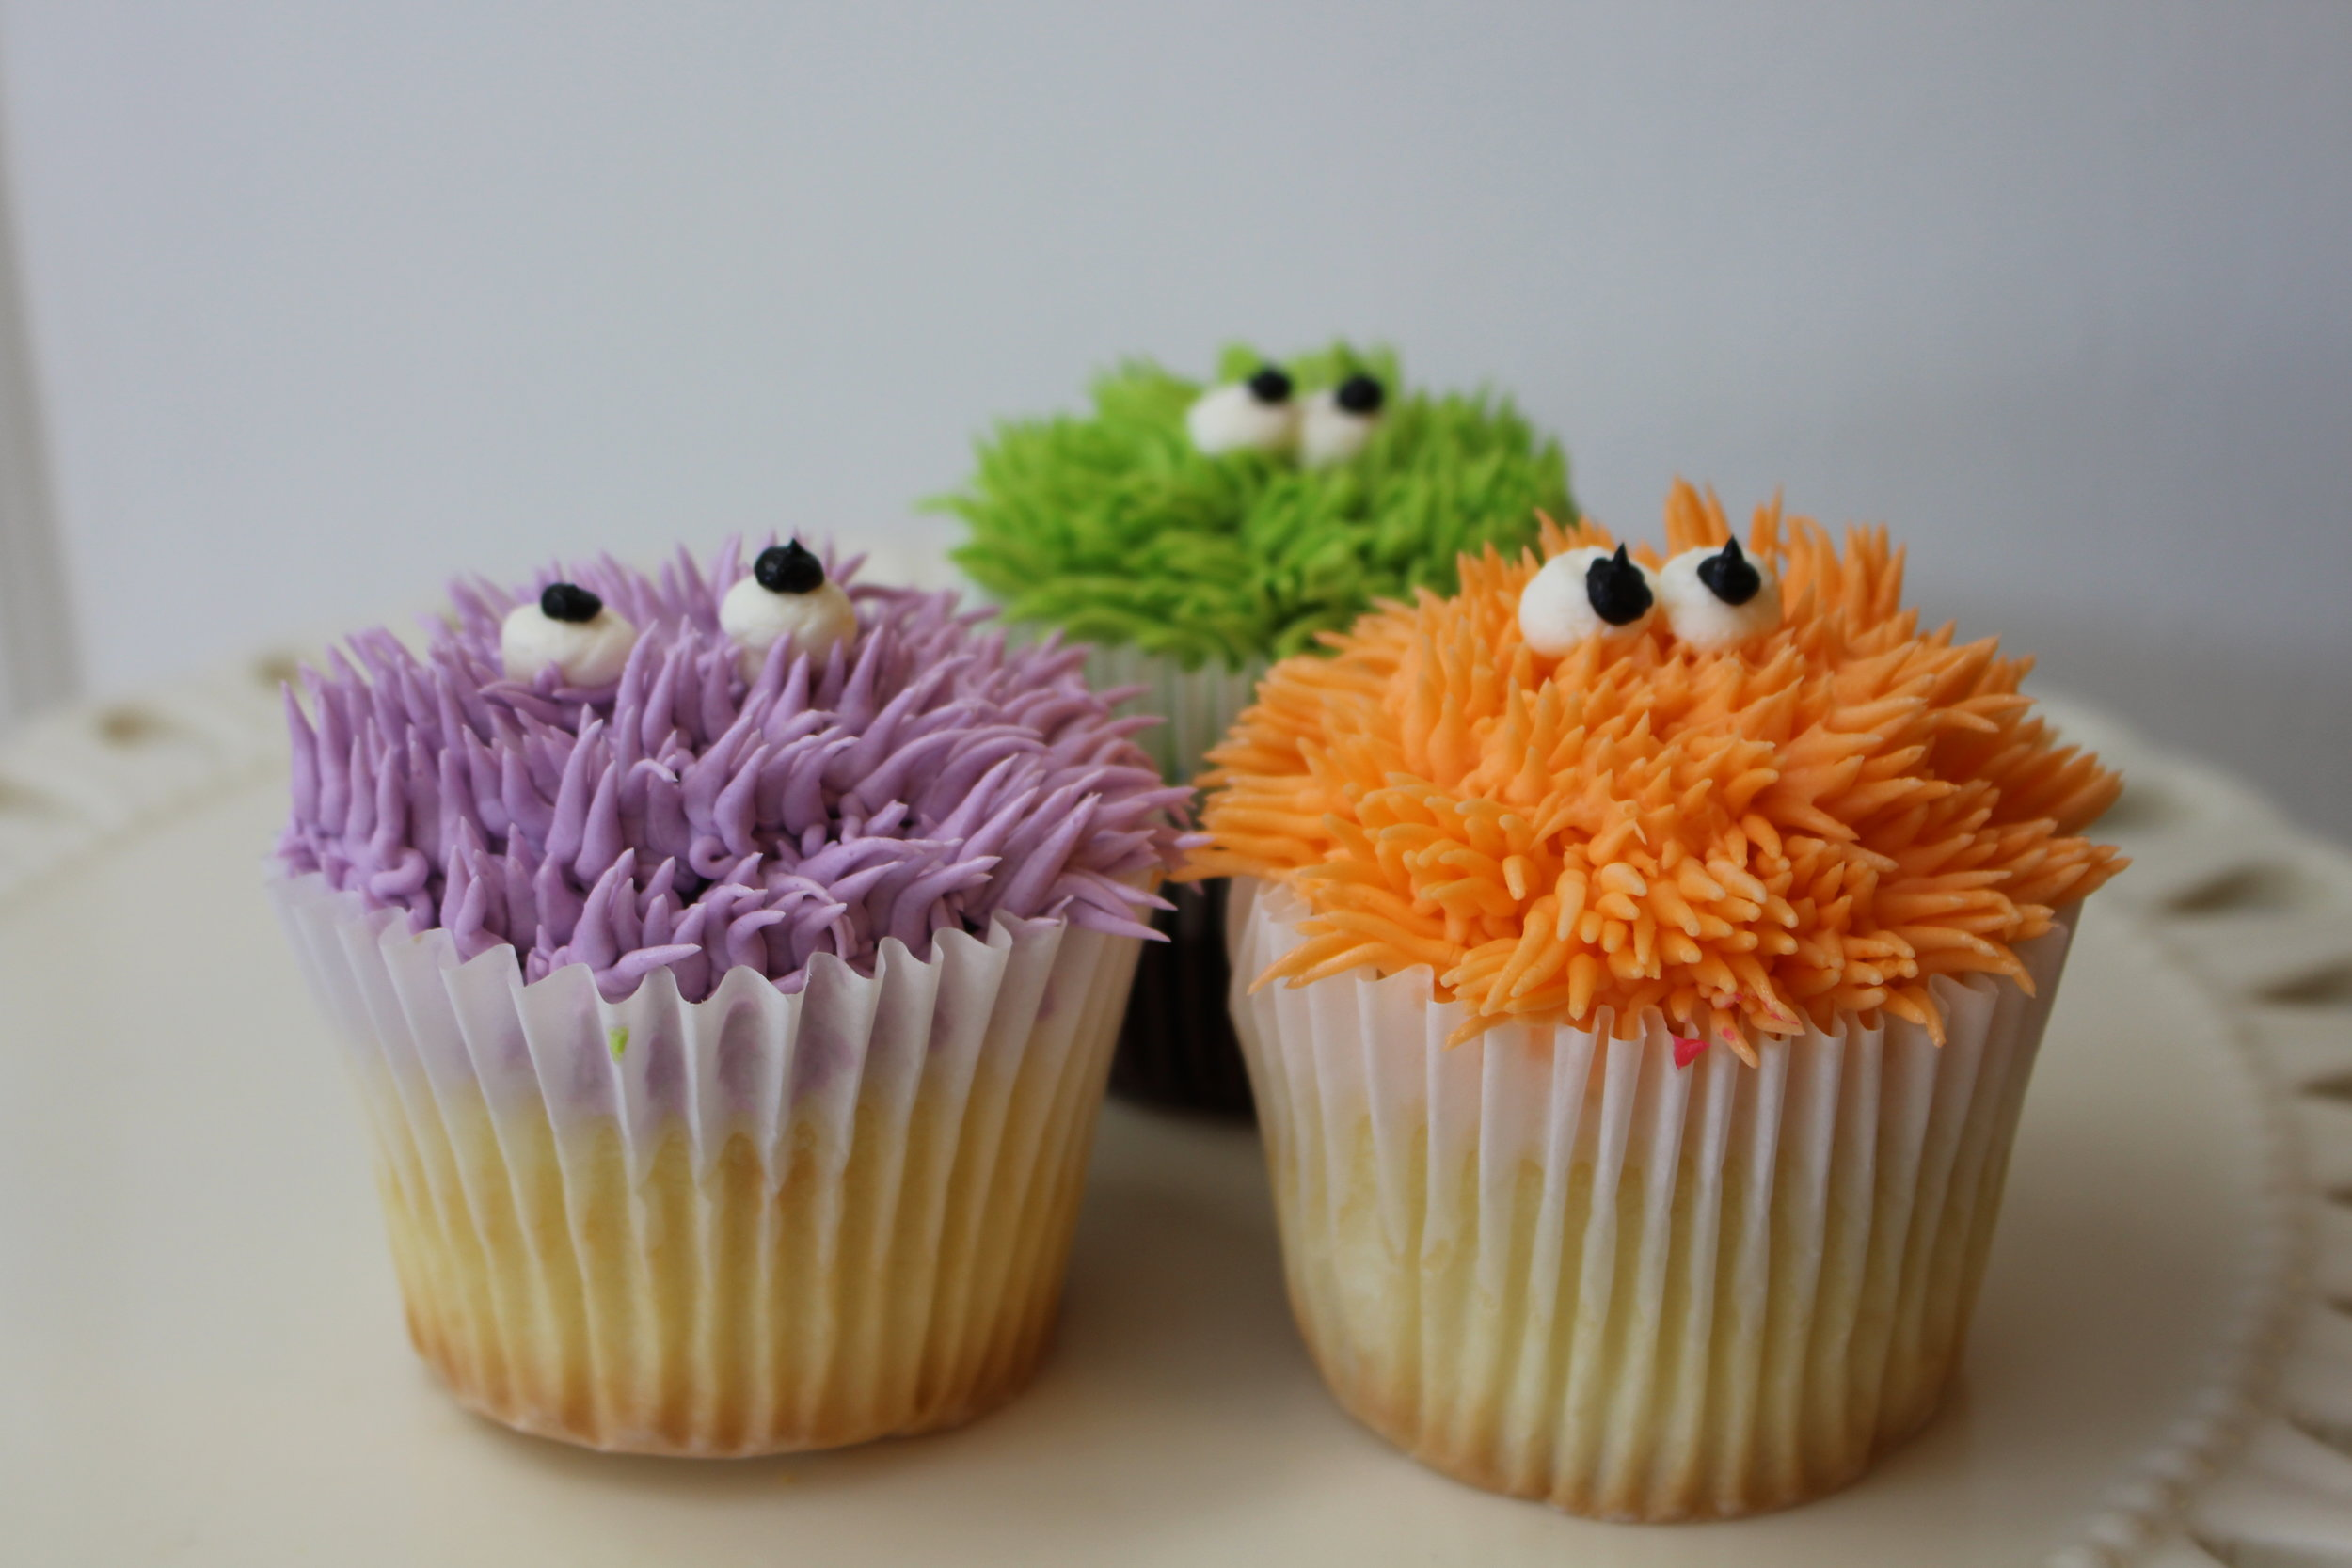 Monster decorated cupcakes with chocolate or white cake, furry colors and peering eyes